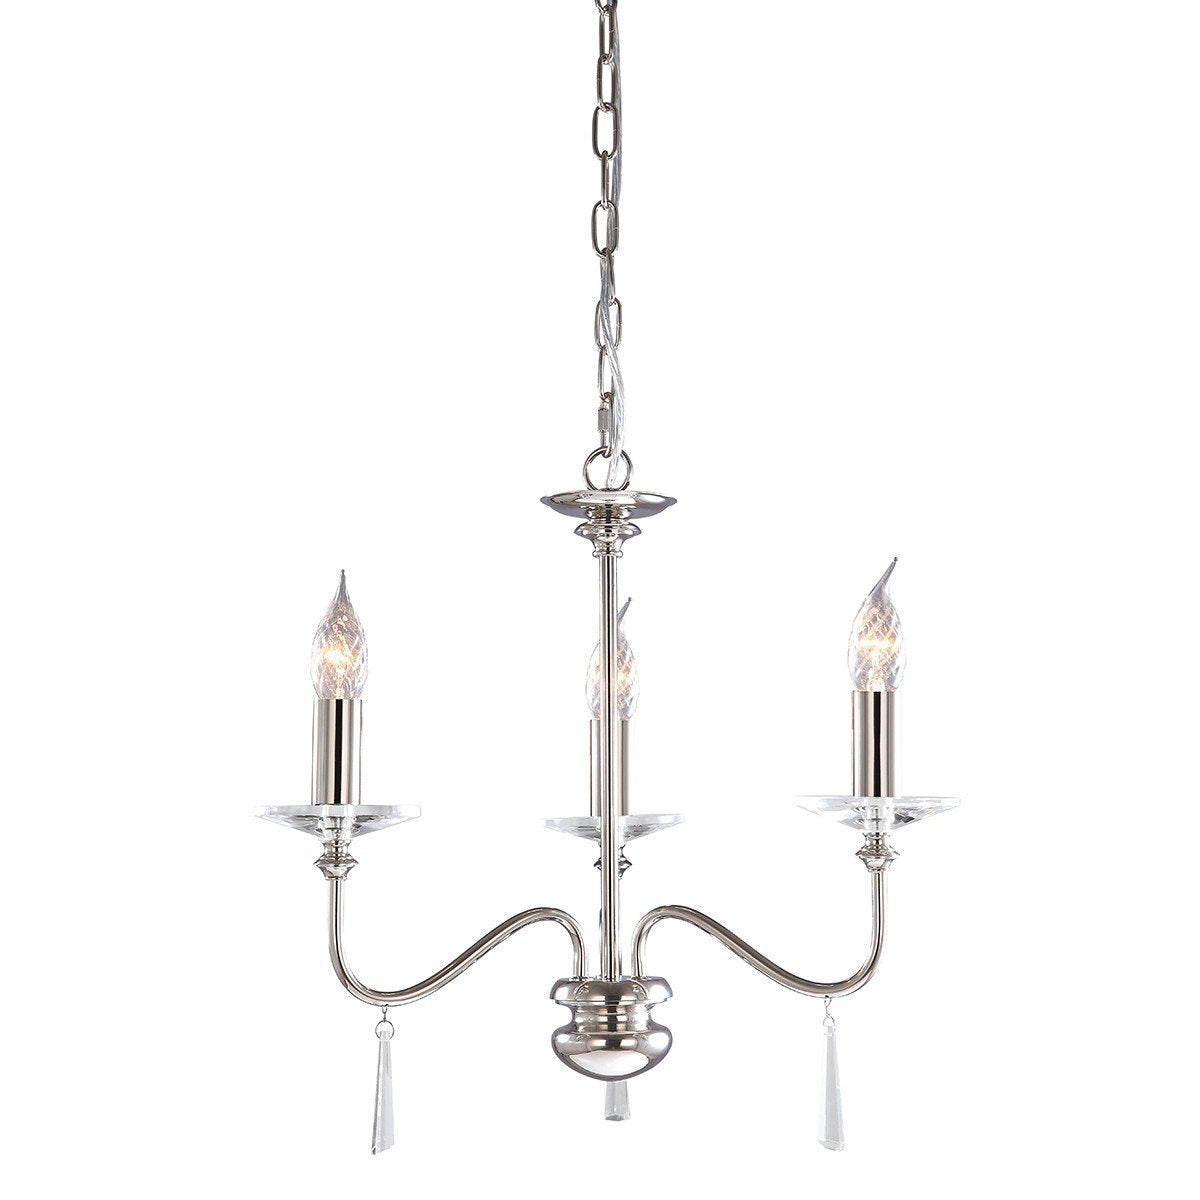 Finsbury Park 3 Arm Chandelier - London Lighting - 1